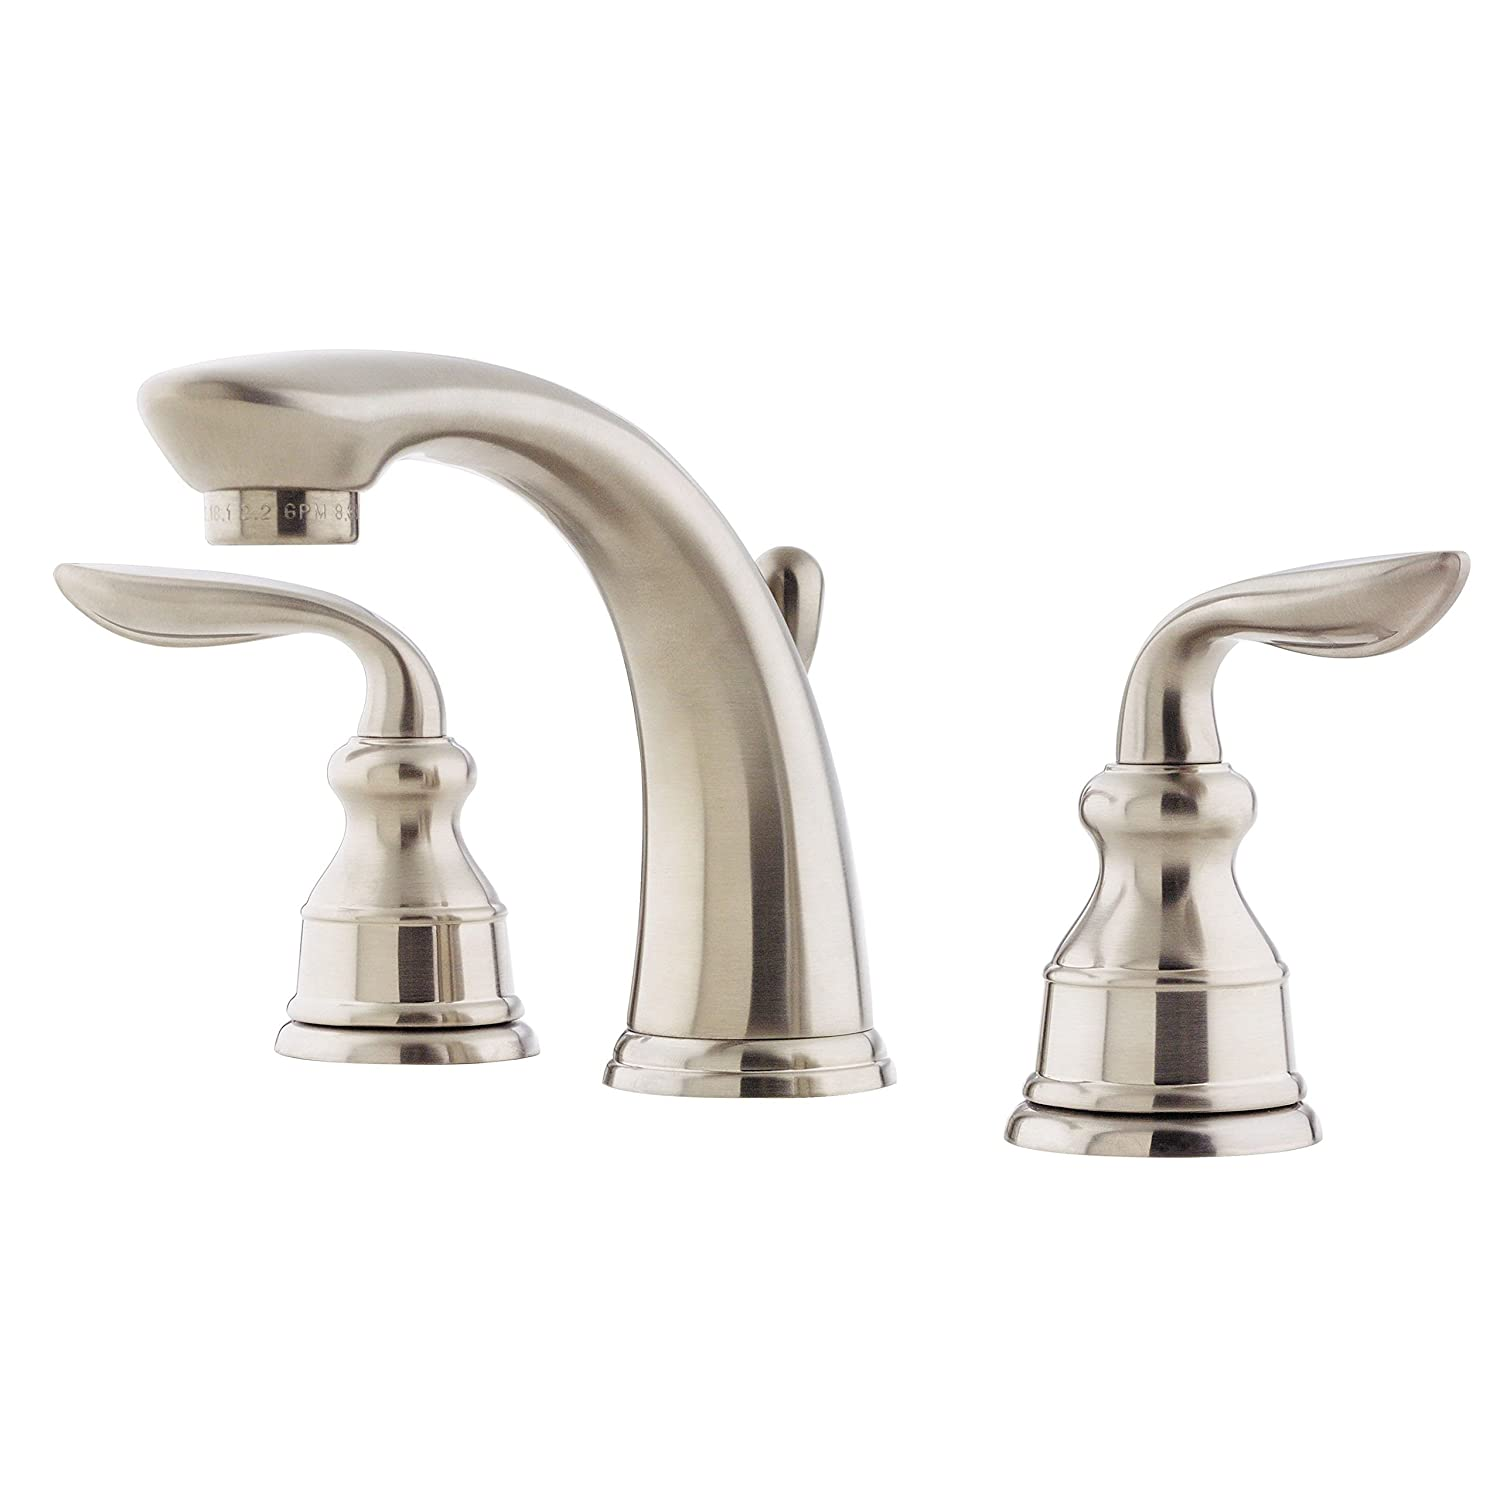 Pfister LF049CB0K Avalon 2-Handle 8 Inch Widespread Bathroom Faucet ...